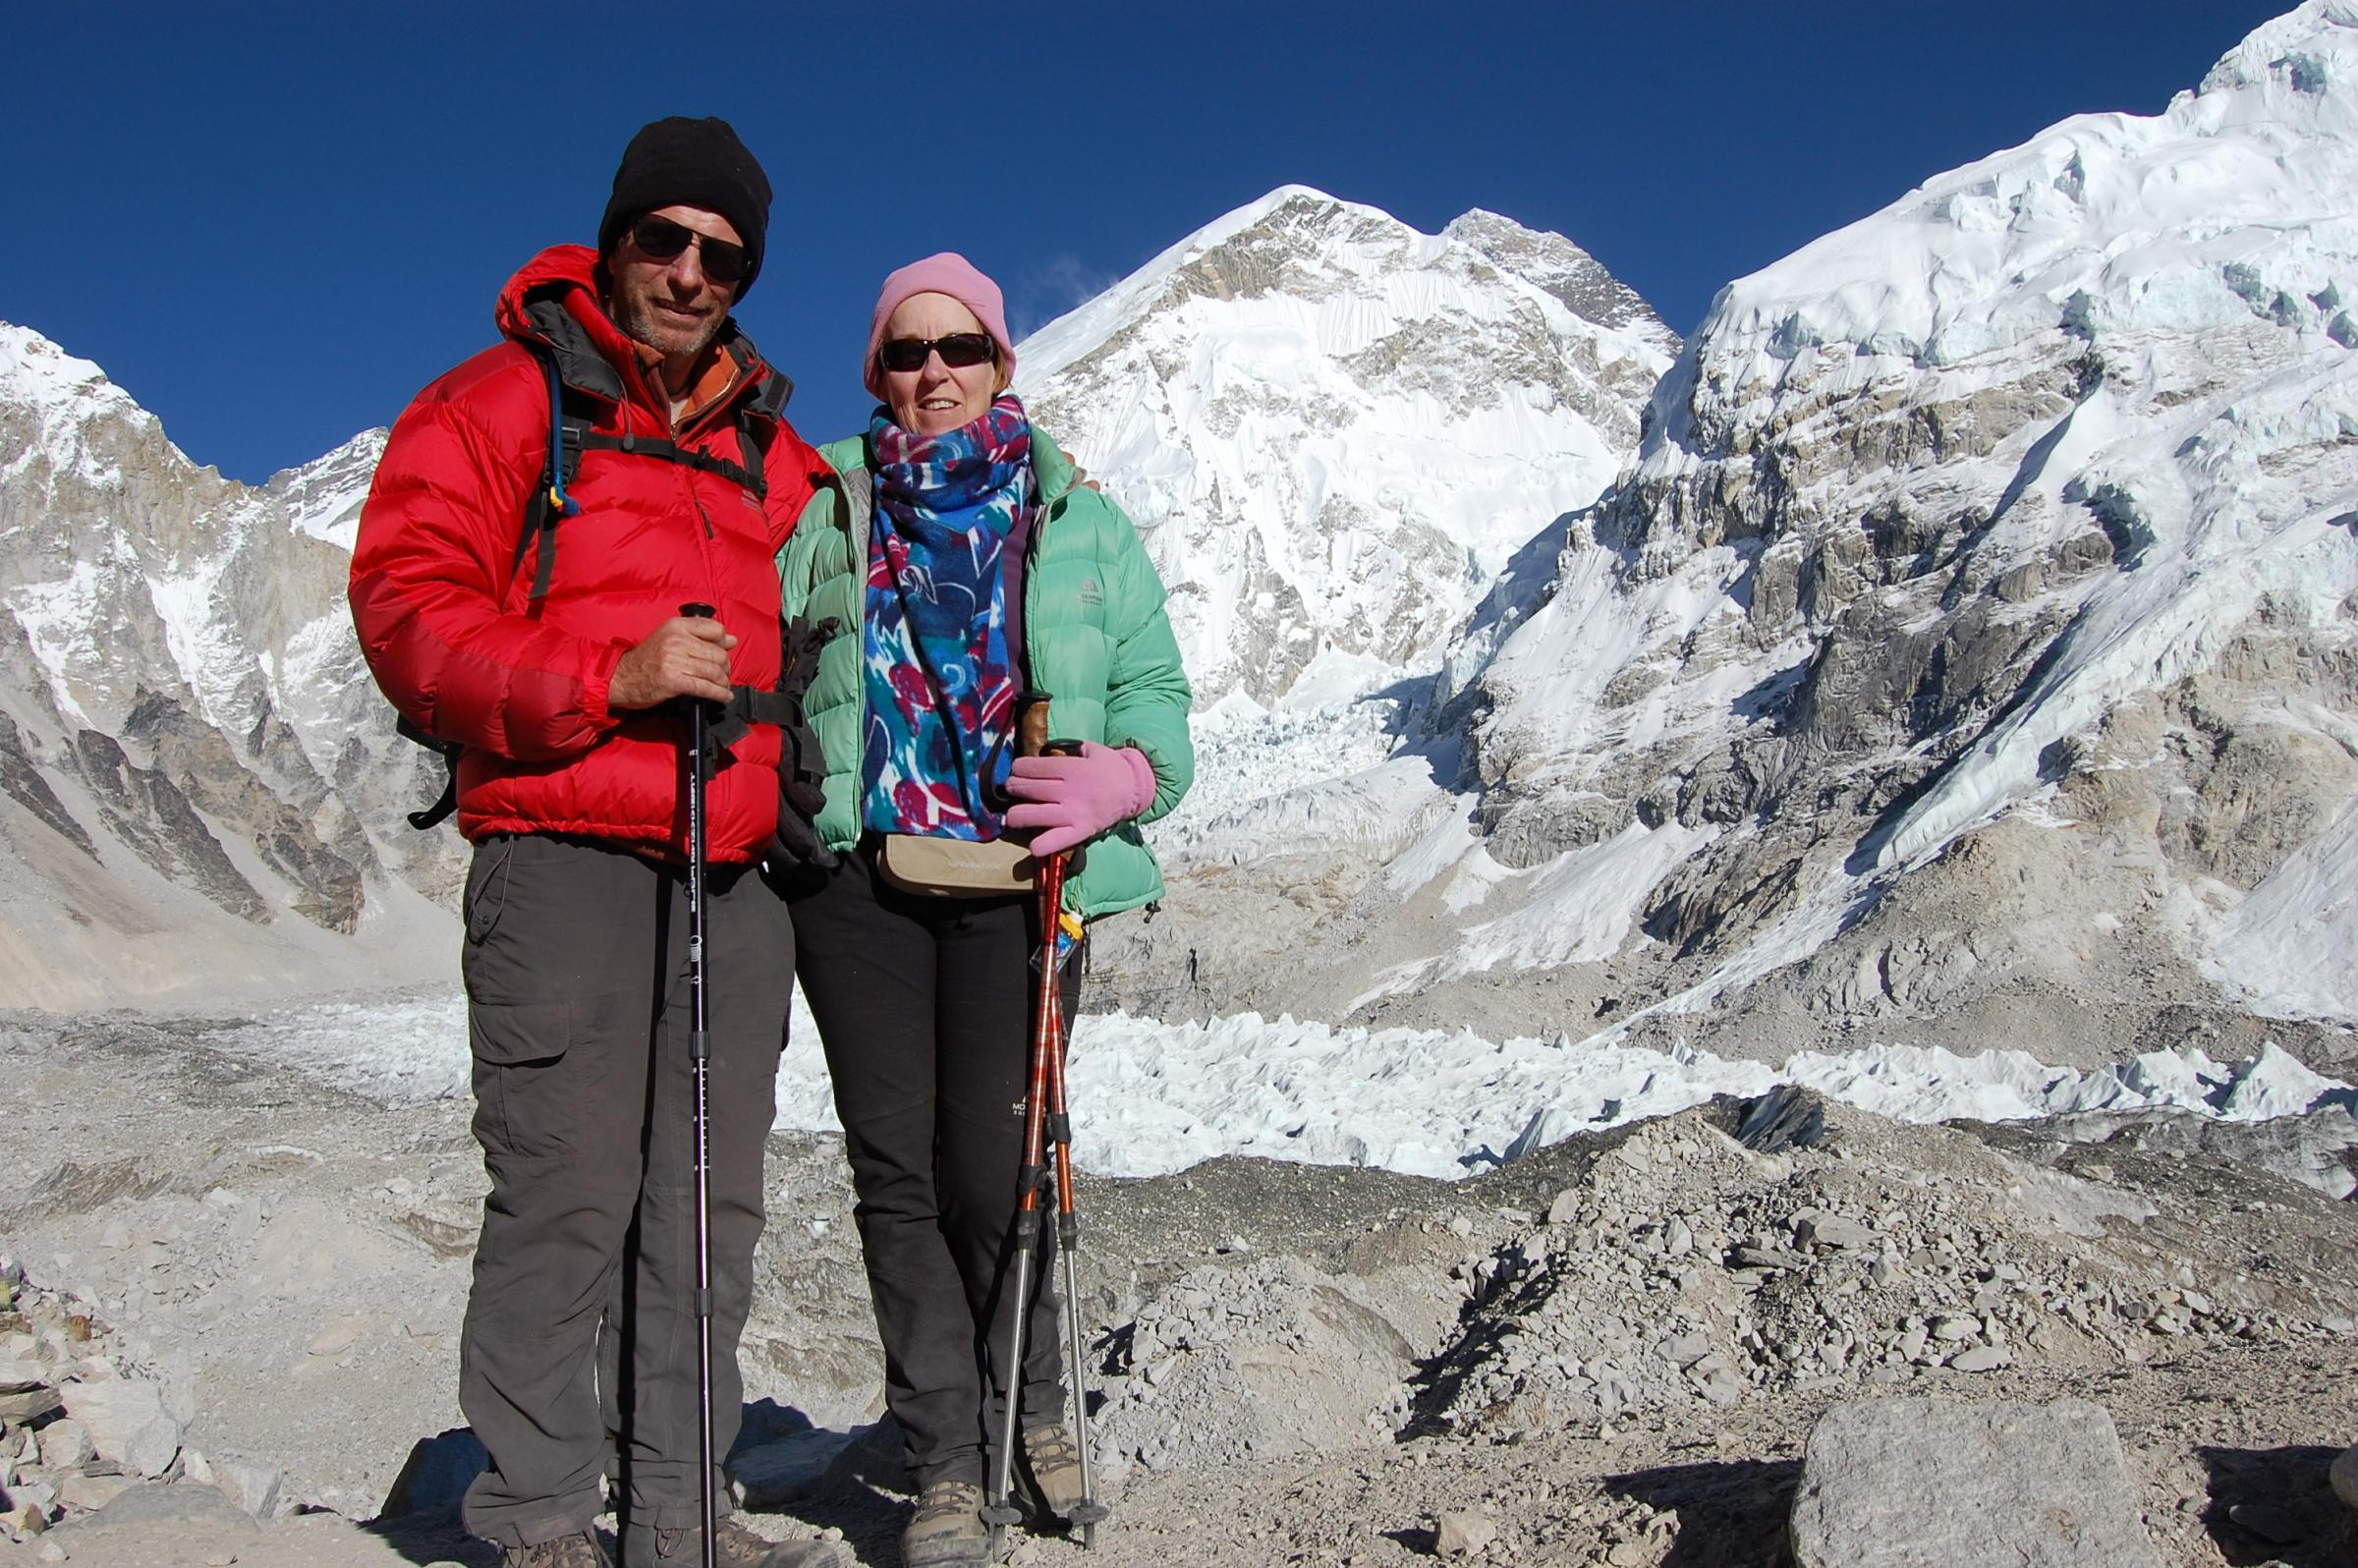 Challenge: Mike Schoen is preparing to climb Kilimanjaro. Pictured with his wife Mary